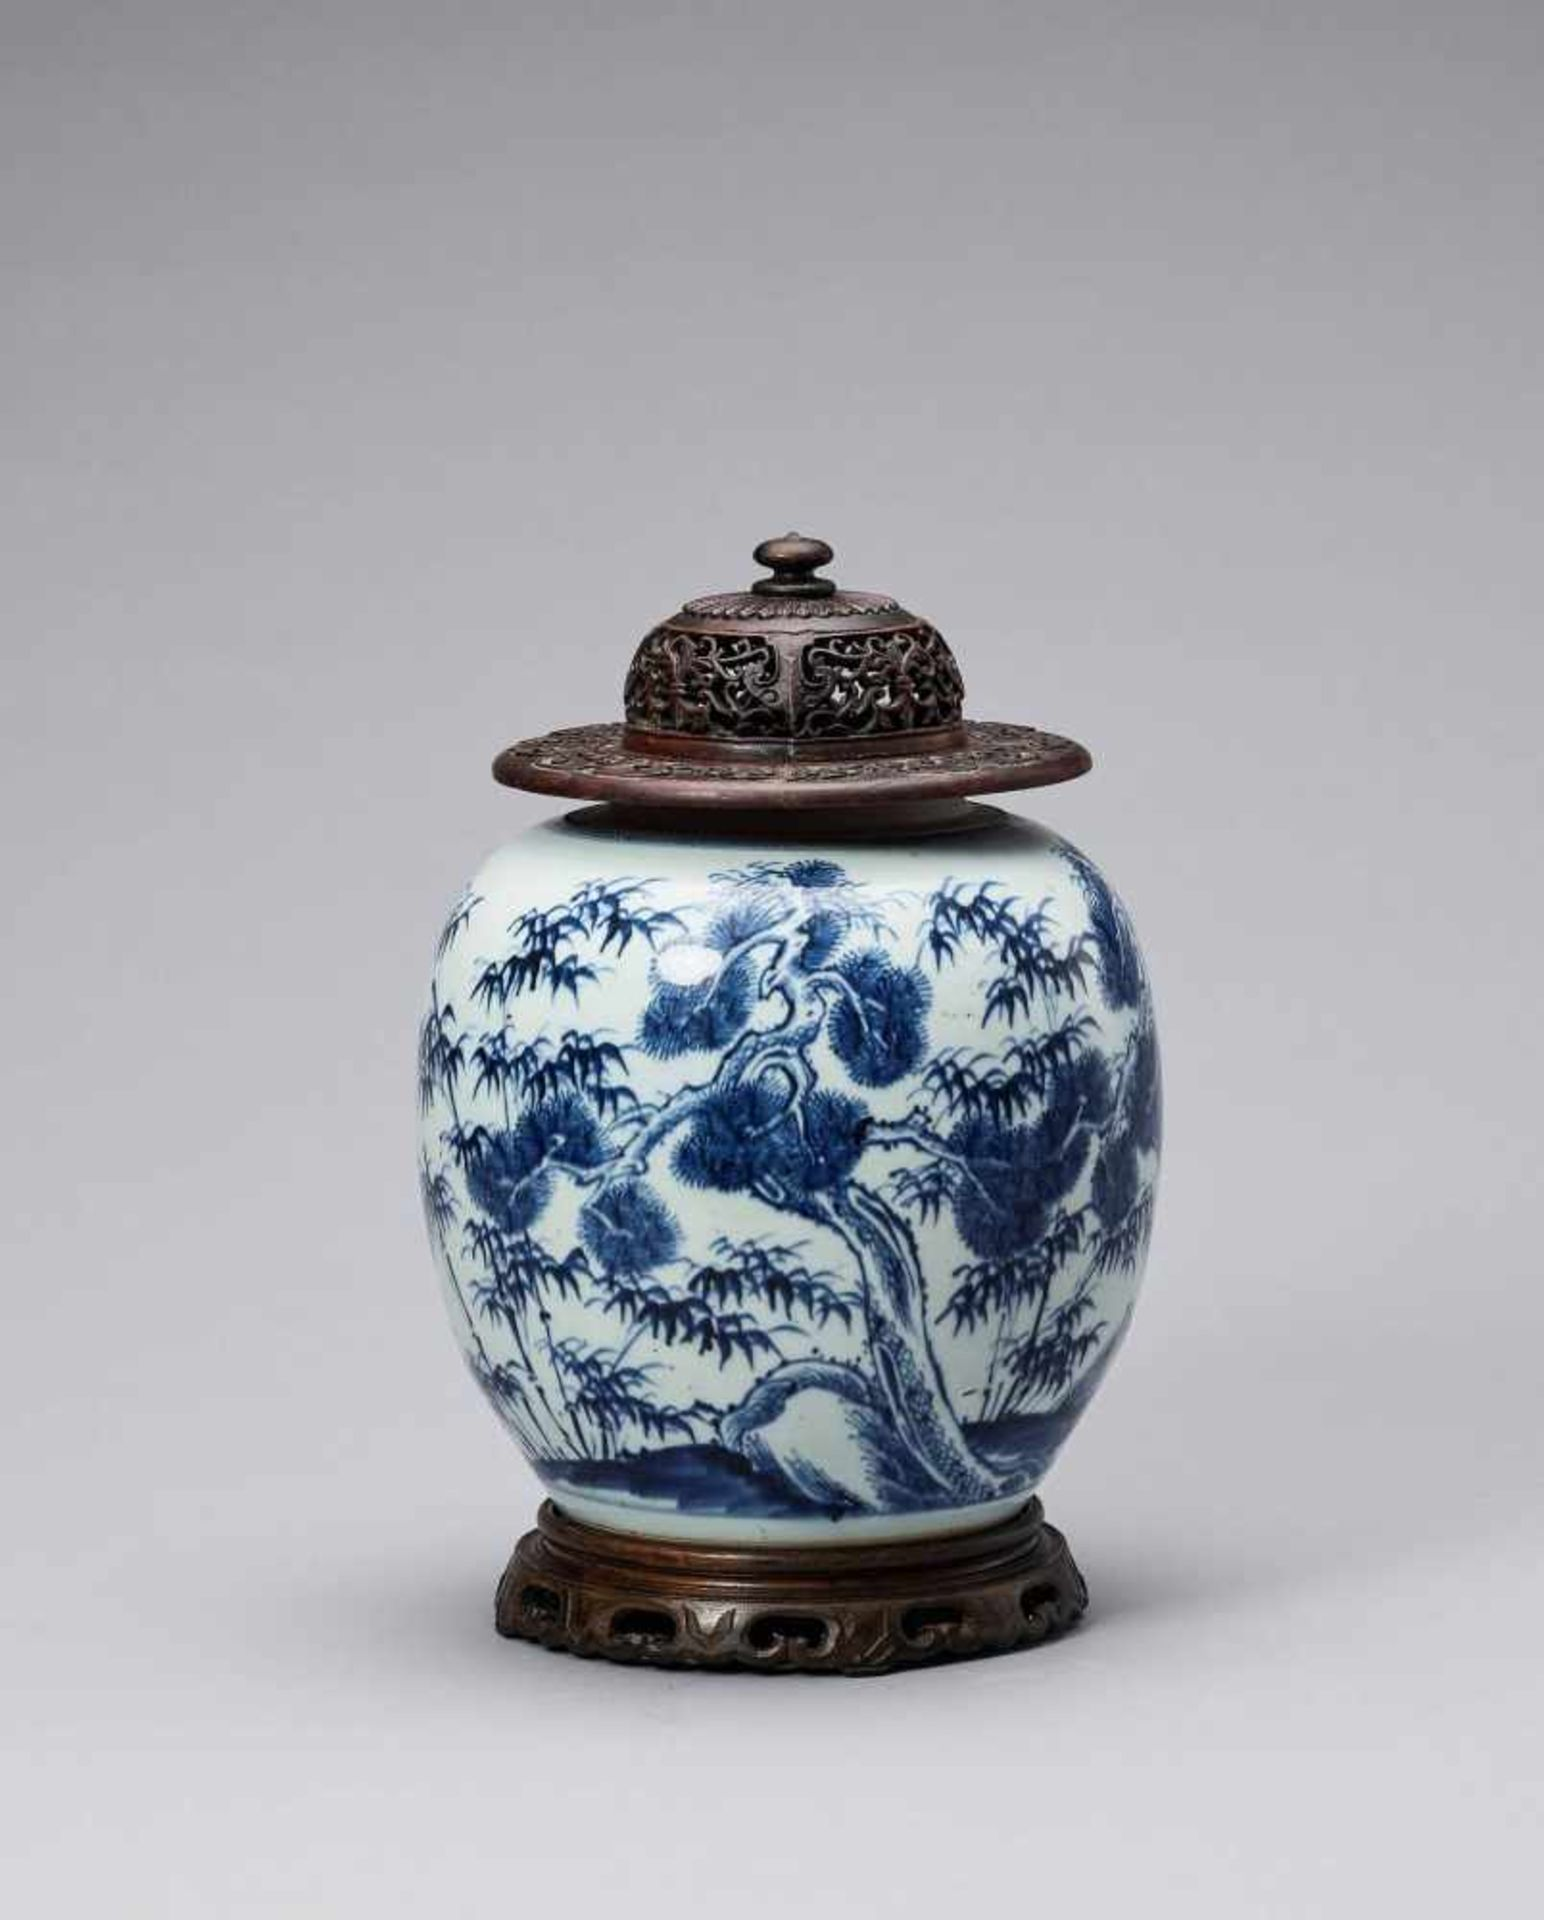 Los 412 - A BLUE AND WHITE GLAZED PORCELAIN 'THREE FRIENDS OF WINTER' GINGER JAR, KANGXI <br